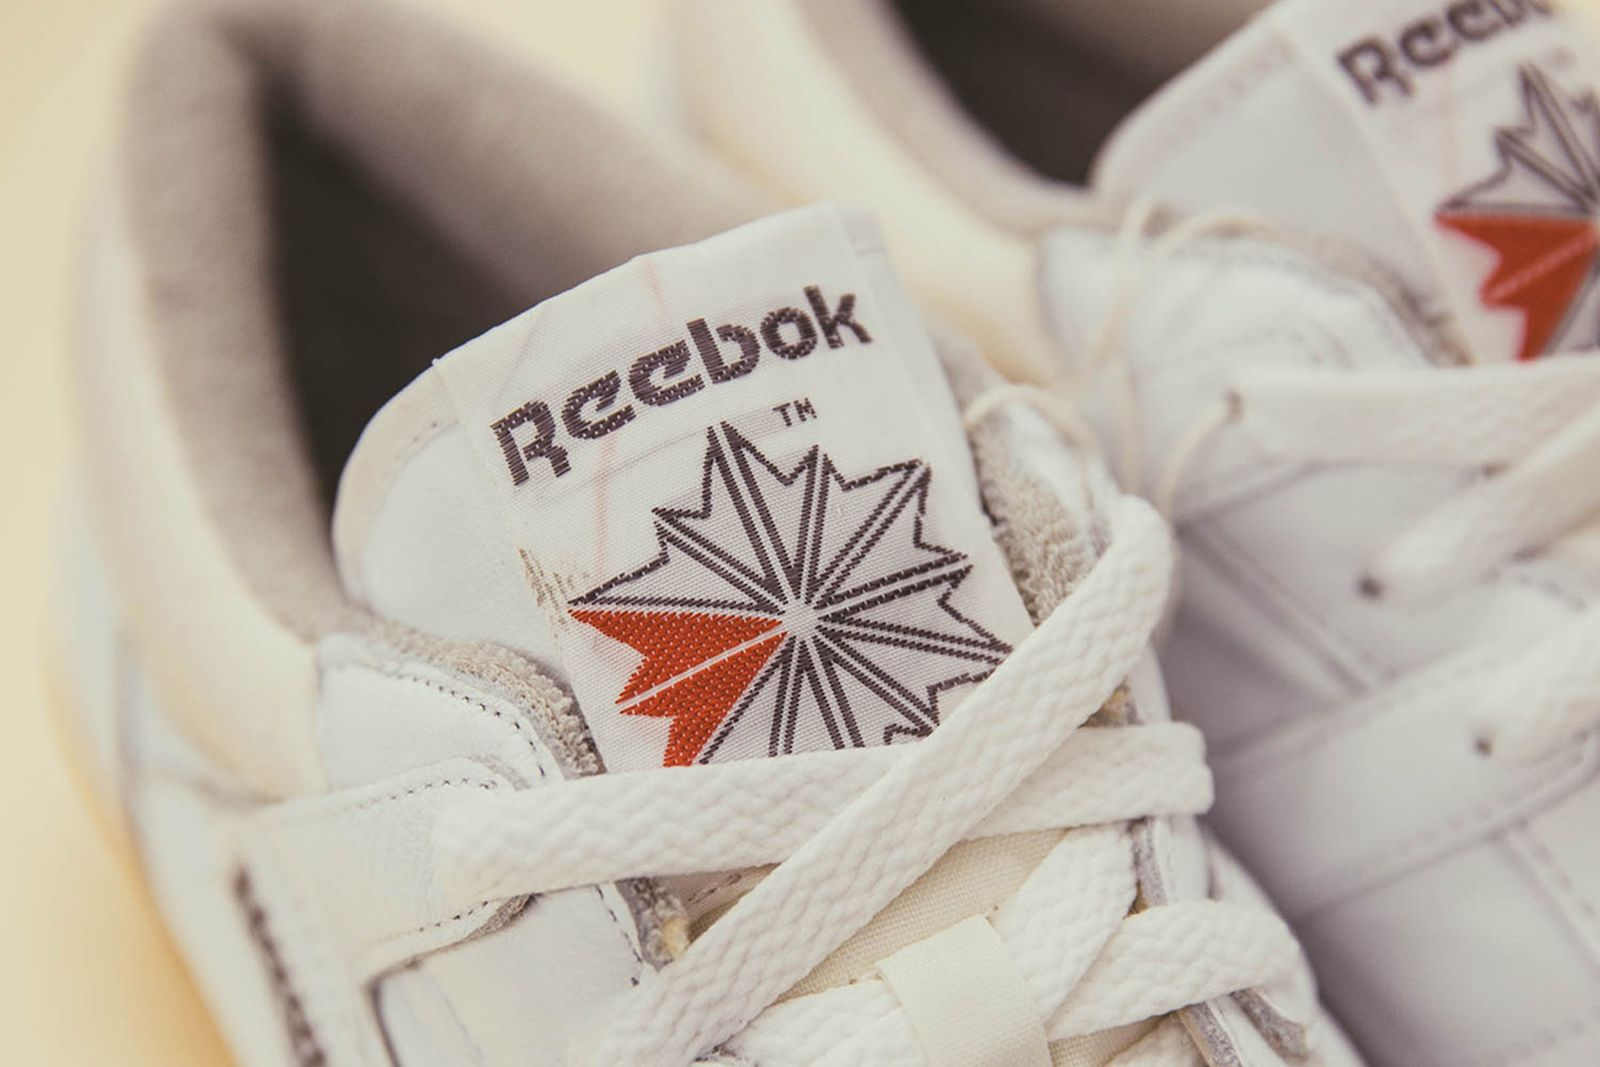 escaping-adidas-can-finally-help-reebok-rediscover-its-cool-main